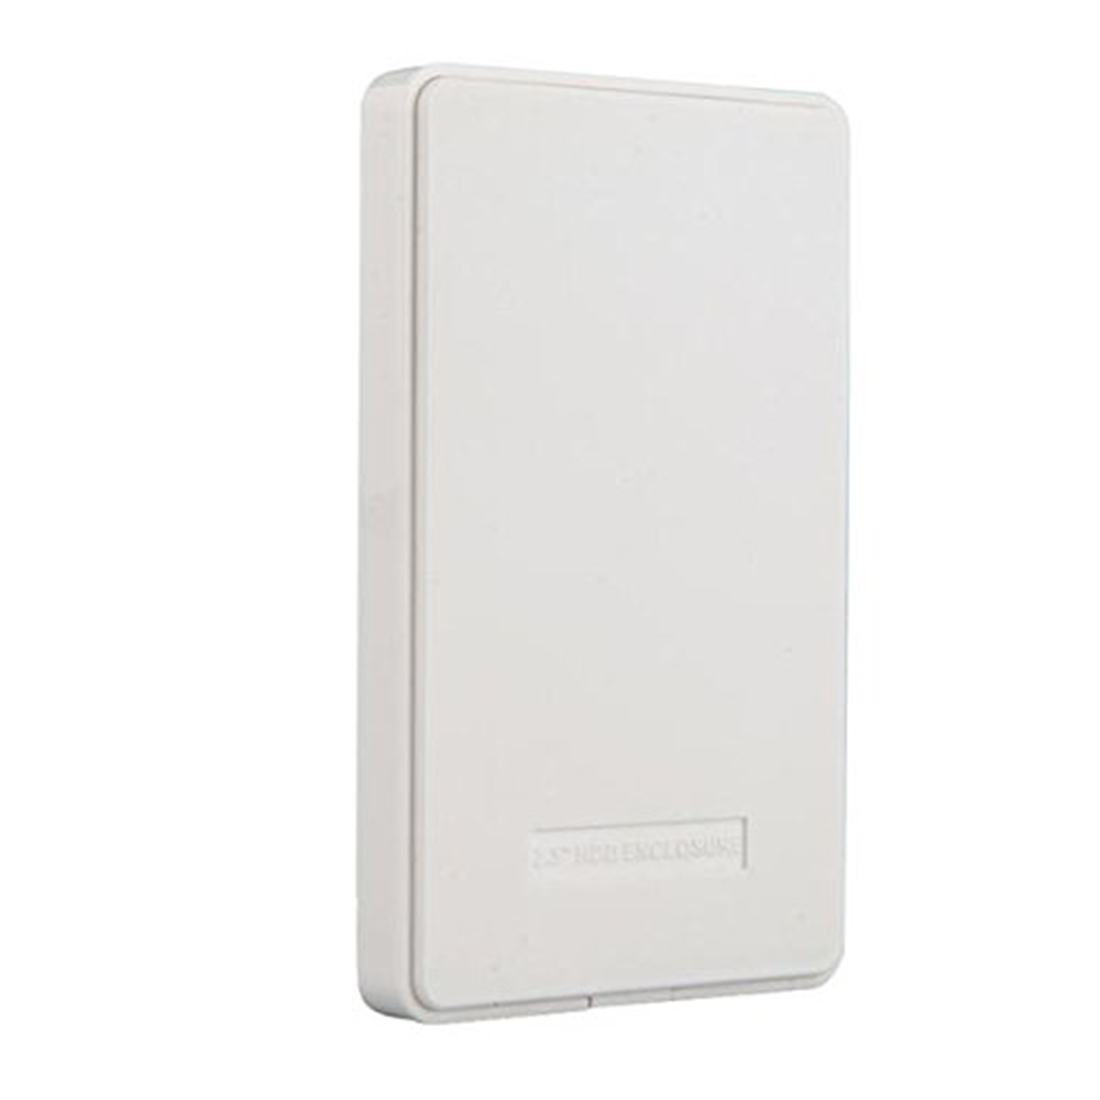 [The goods stop production and no stock]2.5 hard drive, 2.5 Inch Support 2TB Hard Drive Mobile HDD Enclosure Case US